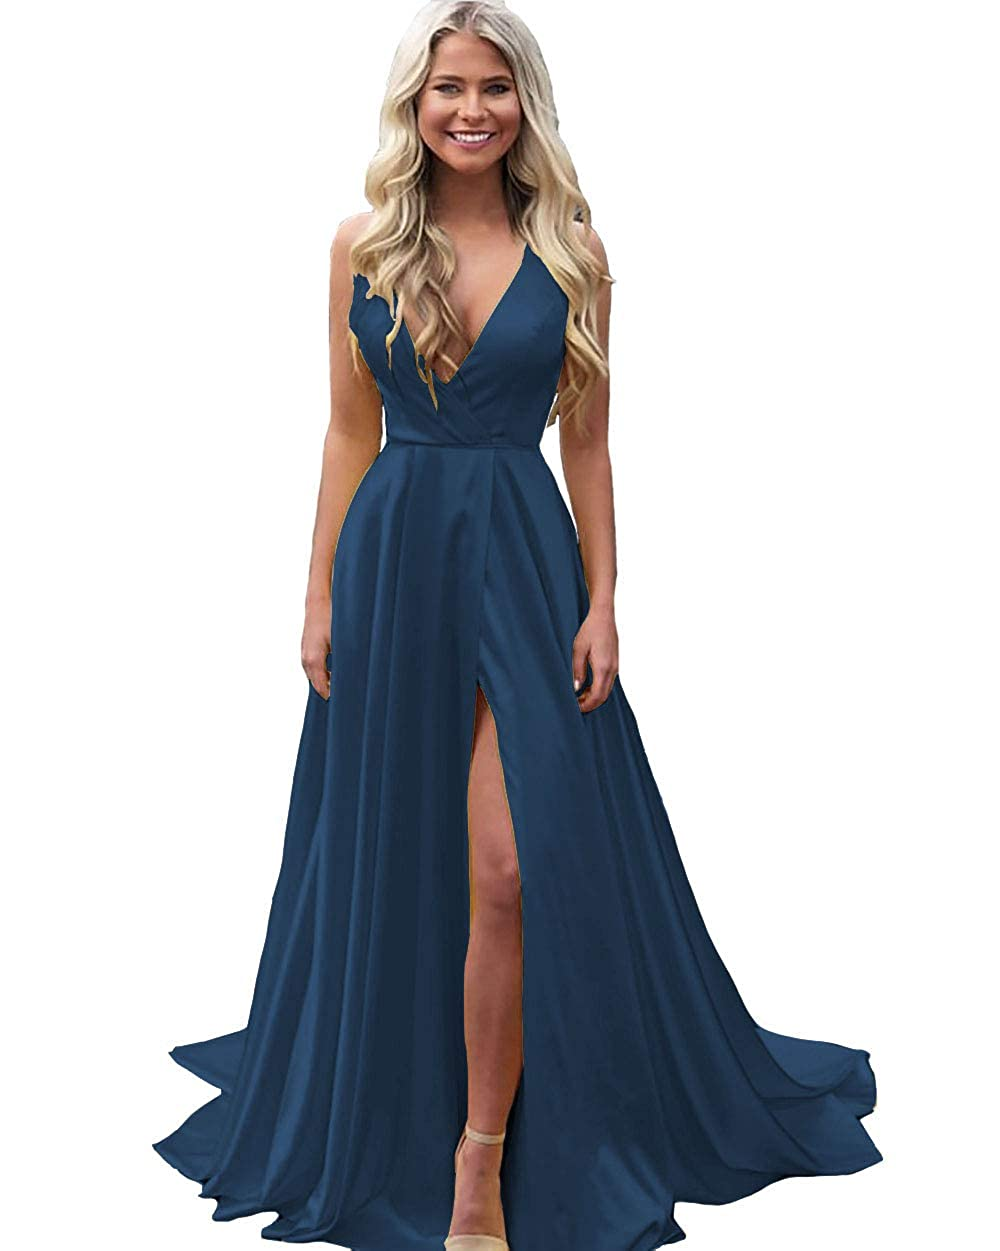 Navy bluee IVYPRECIOUS Women's V Neck Sexy Prom Dresses A Line Side Split Long Formal Evening Gowns